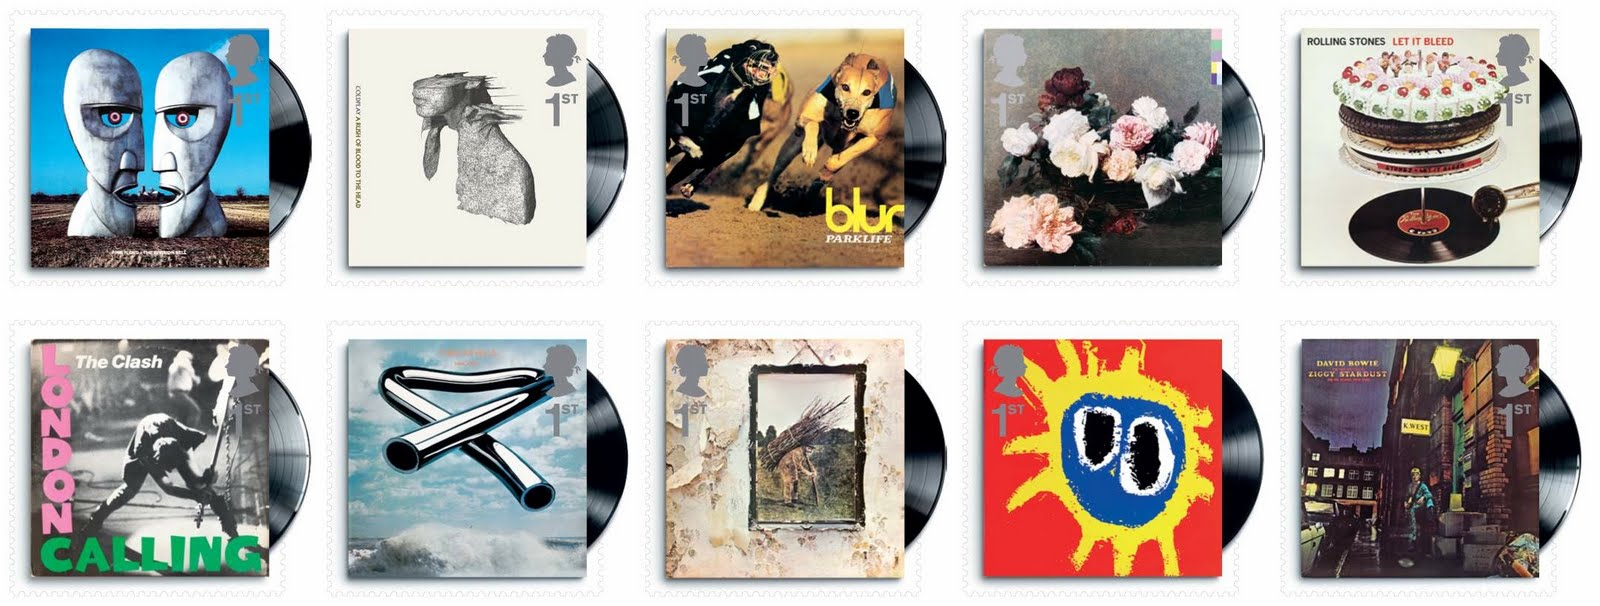 Classic British Album Covers by Blur, Primal Scream, and others to be Featured on Royal Mail Stamps